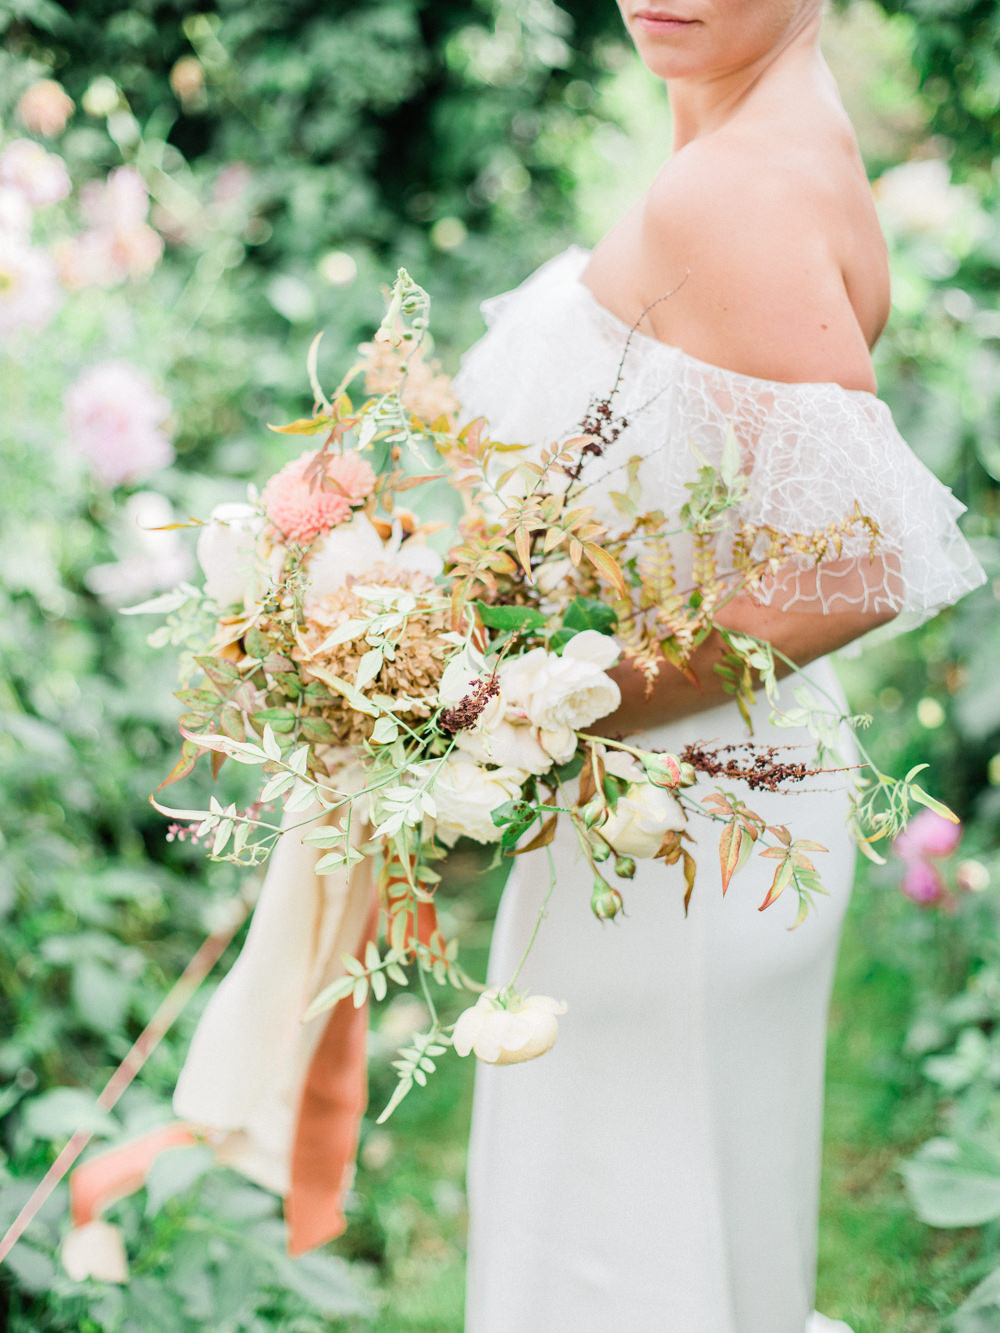 Bouquet Flowers Bride Bridal Peach Apricot Pink Blush Dahlias Rose Greenery Ribbons Fabric Foliage Unstructured Wild Autumn Fine Art Farm Wedding Ideas Seyi Rochelle Photography